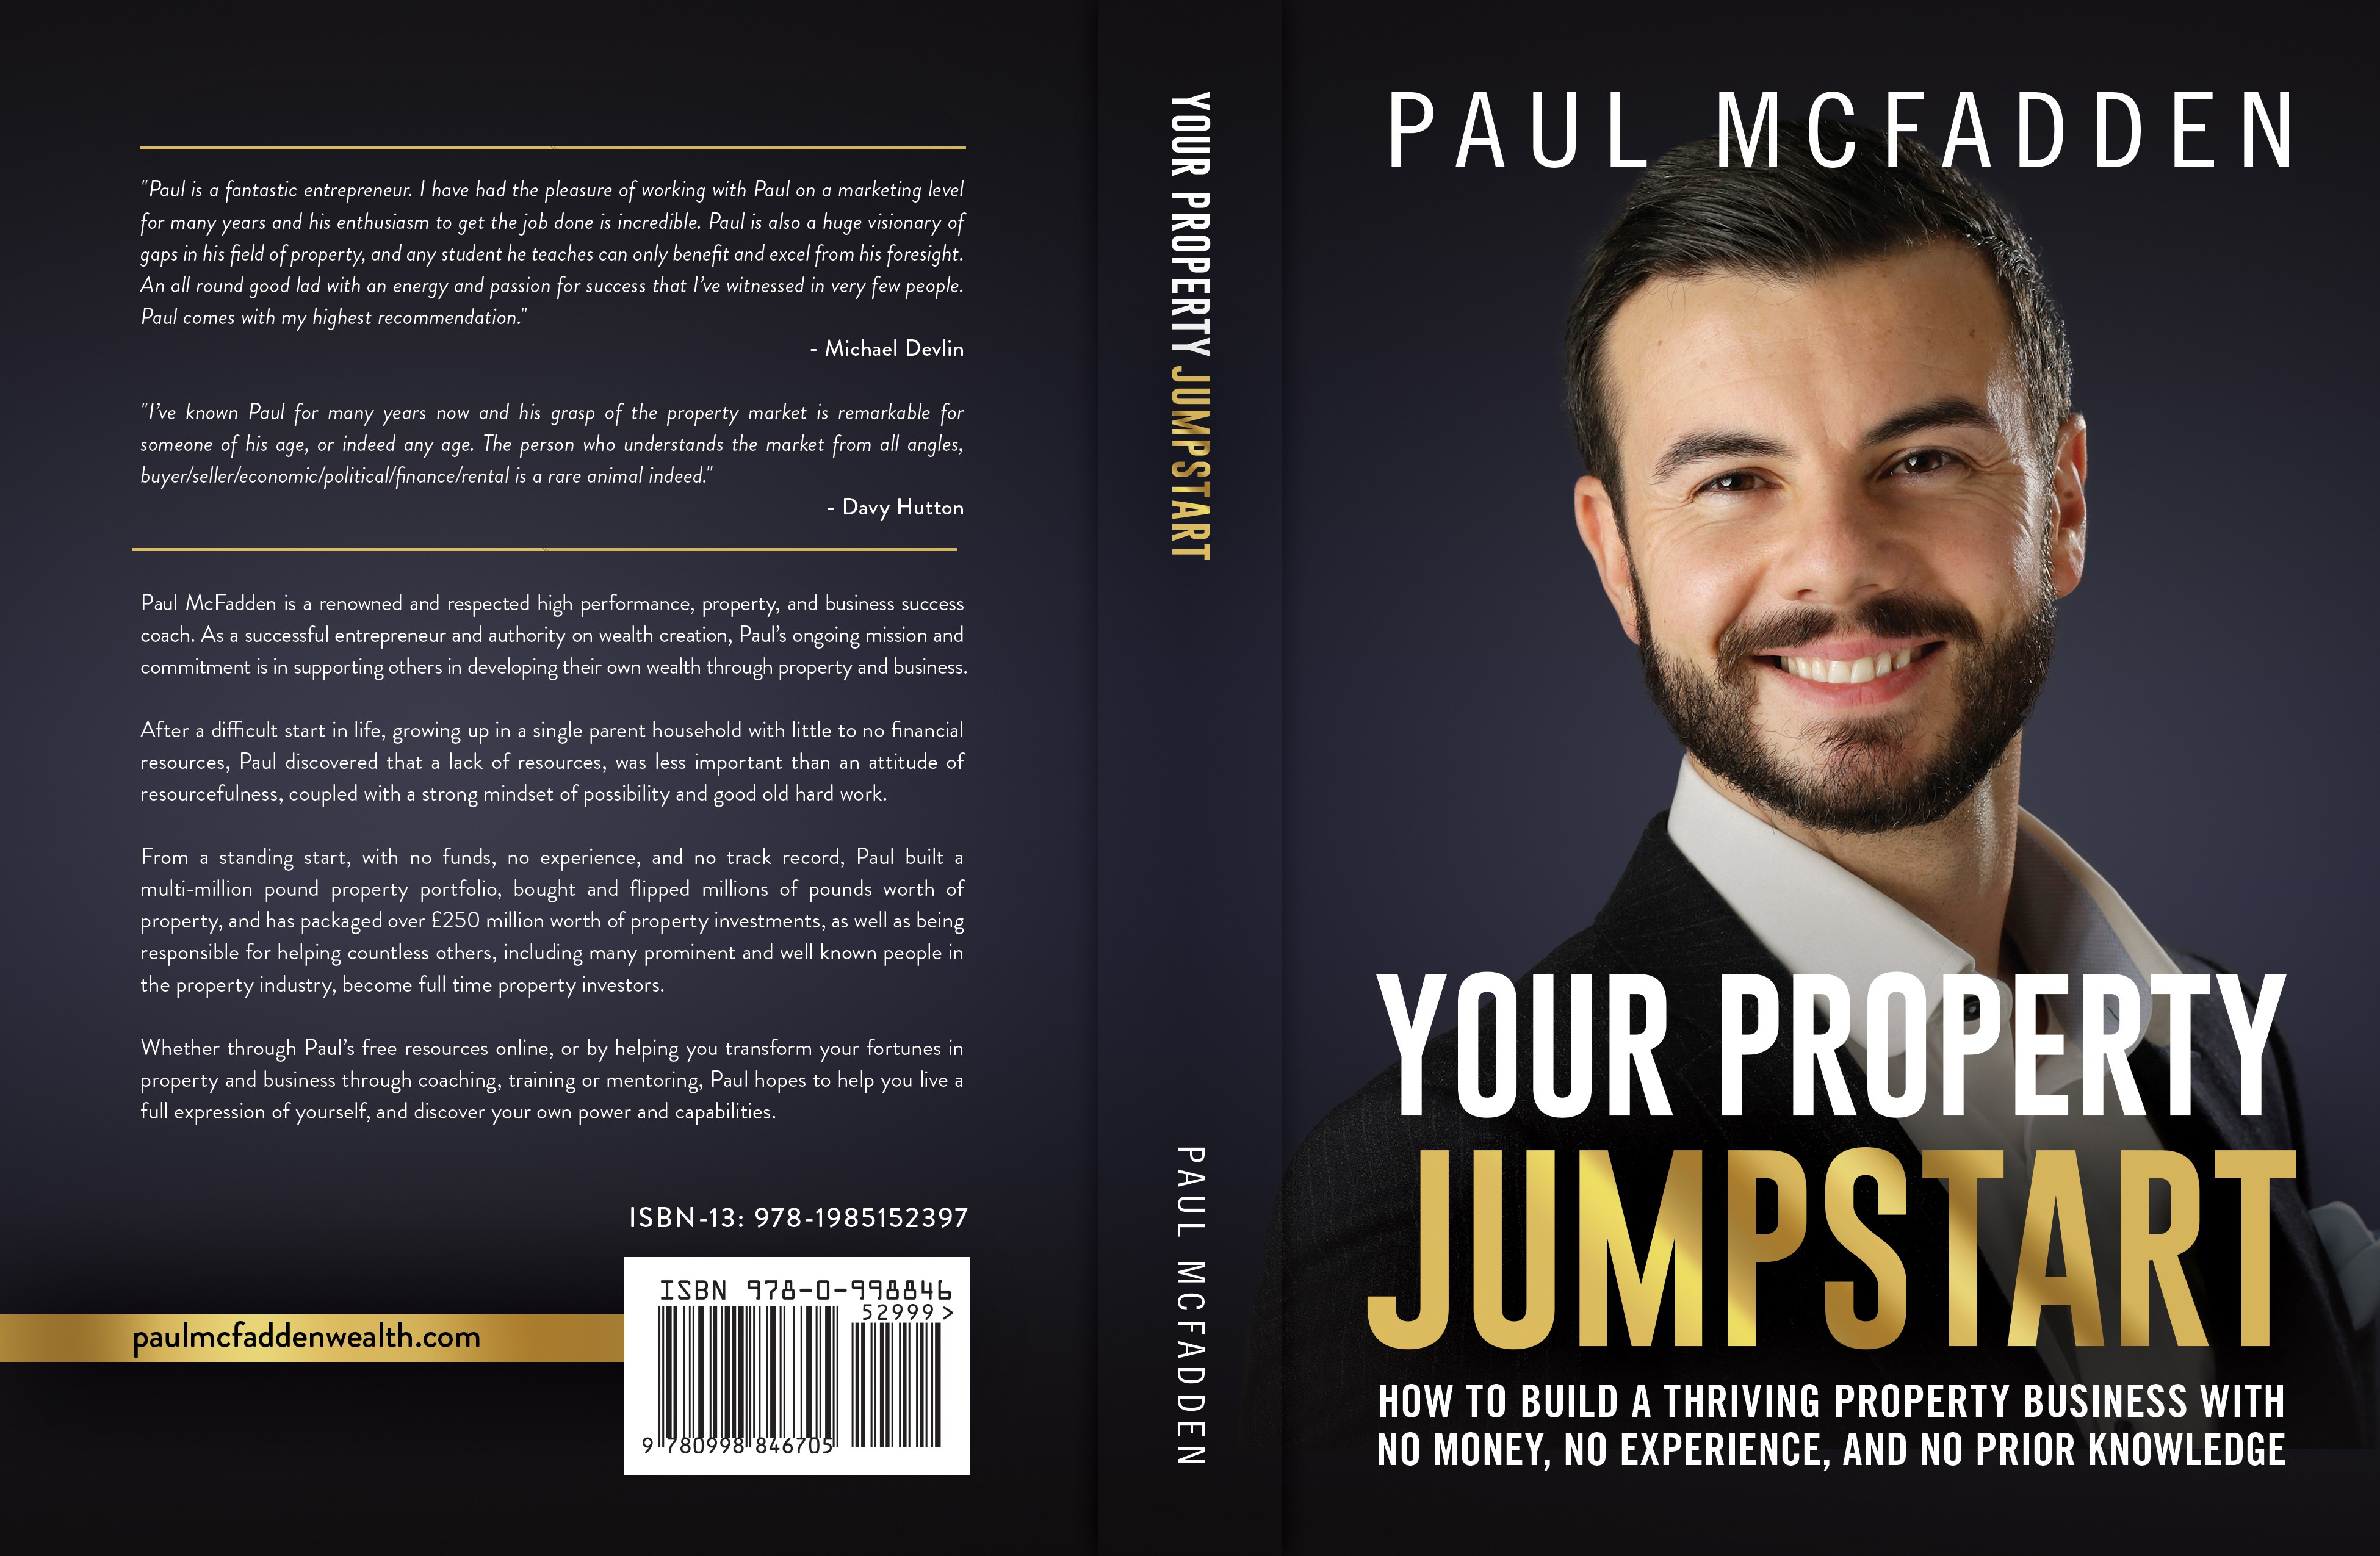 book cover - impactful design for an investment book needed